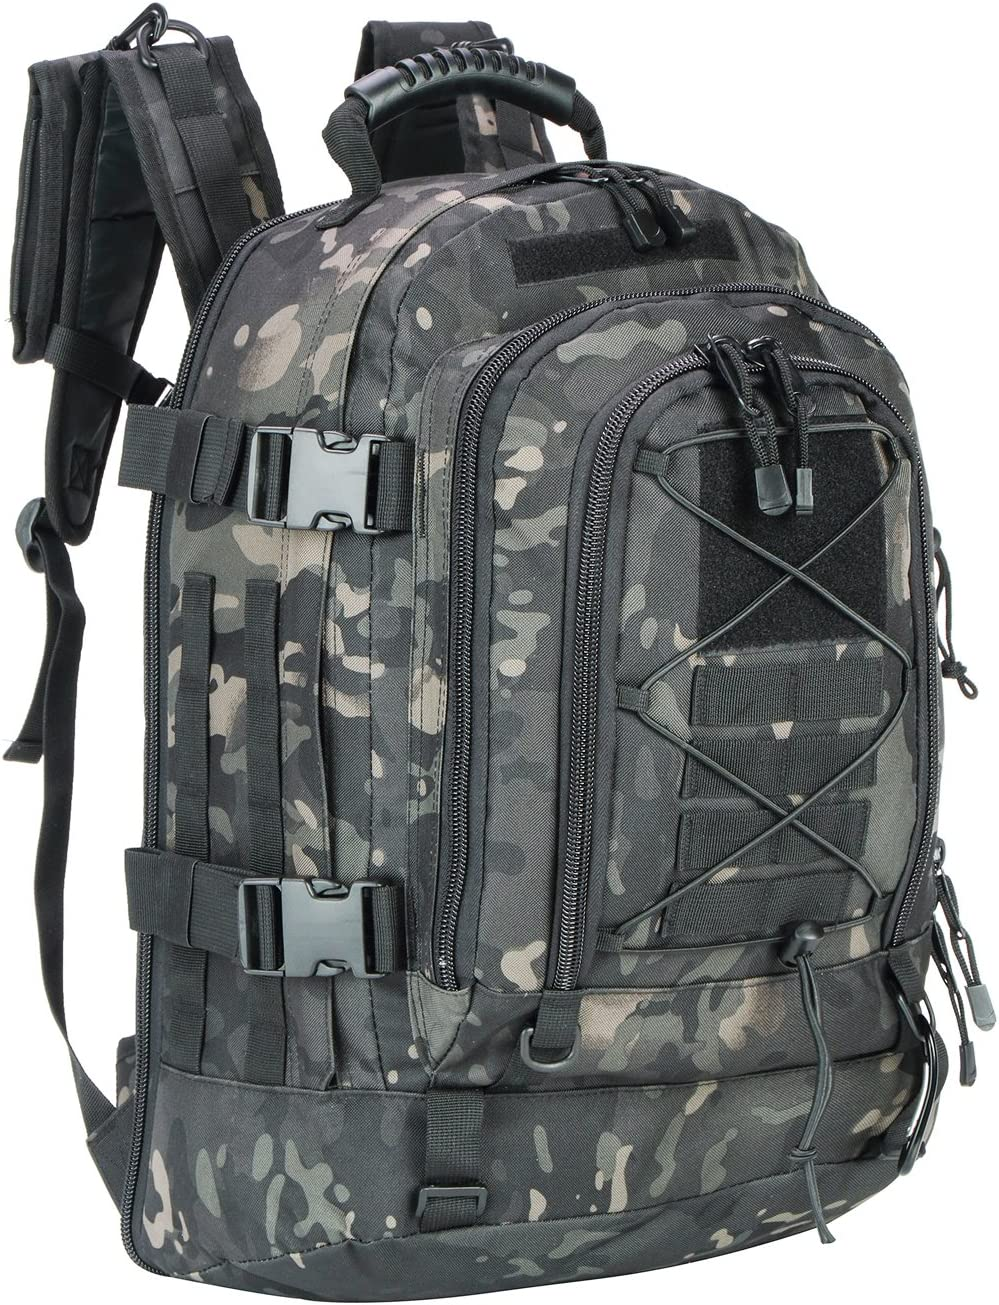 best hunting day pack: WolfWarriorX Men Backpacks